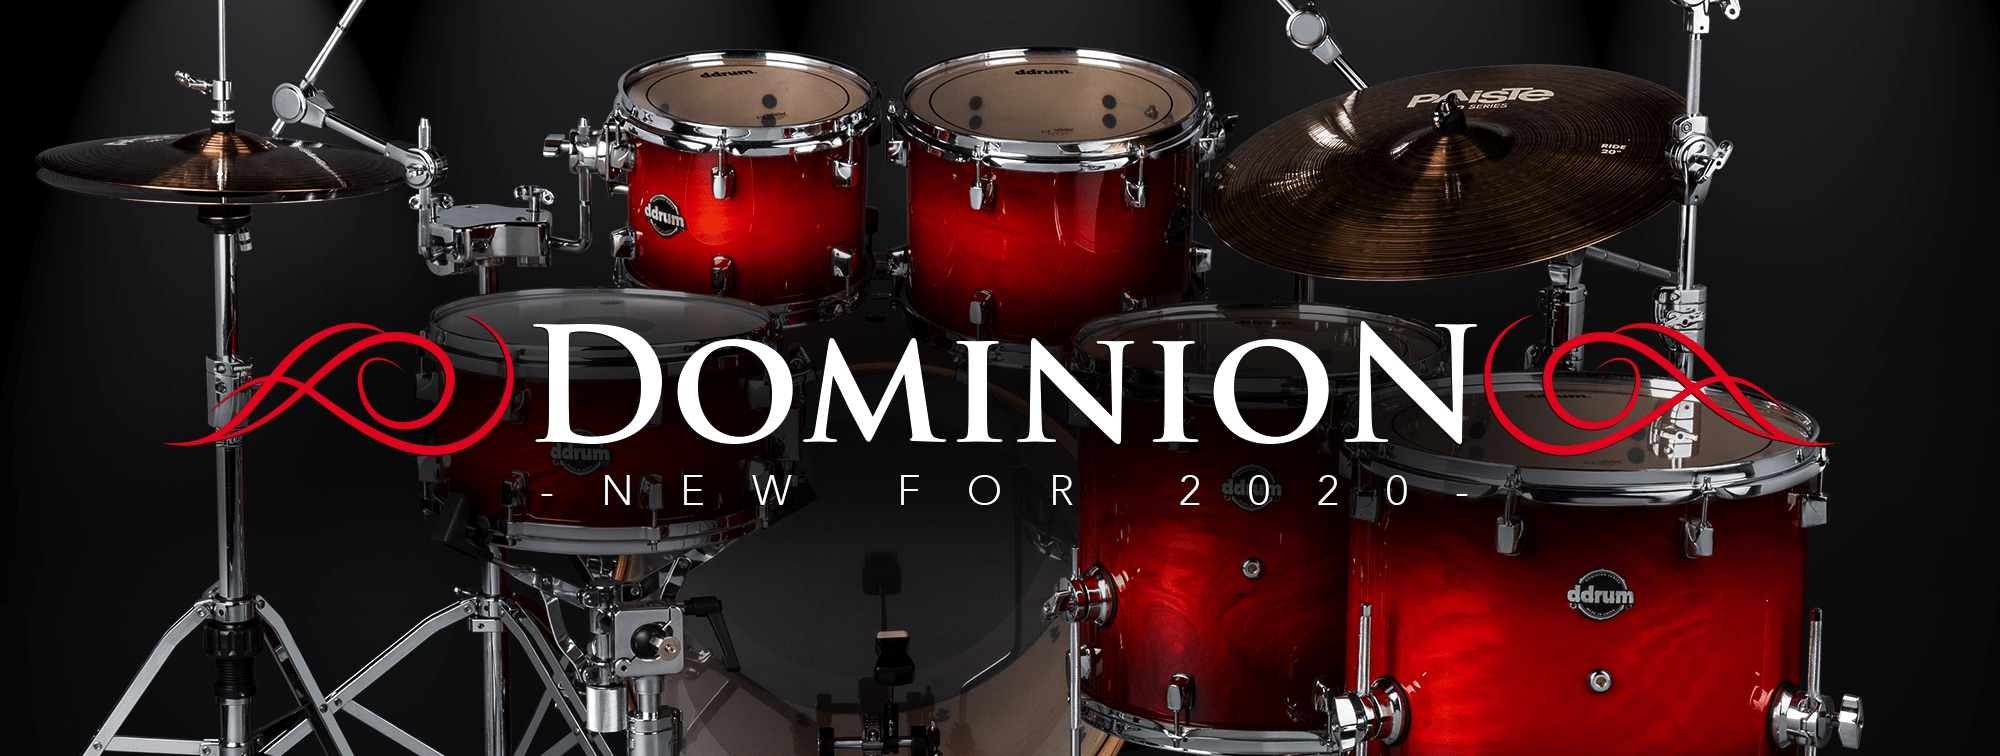 ddrum New for 2020